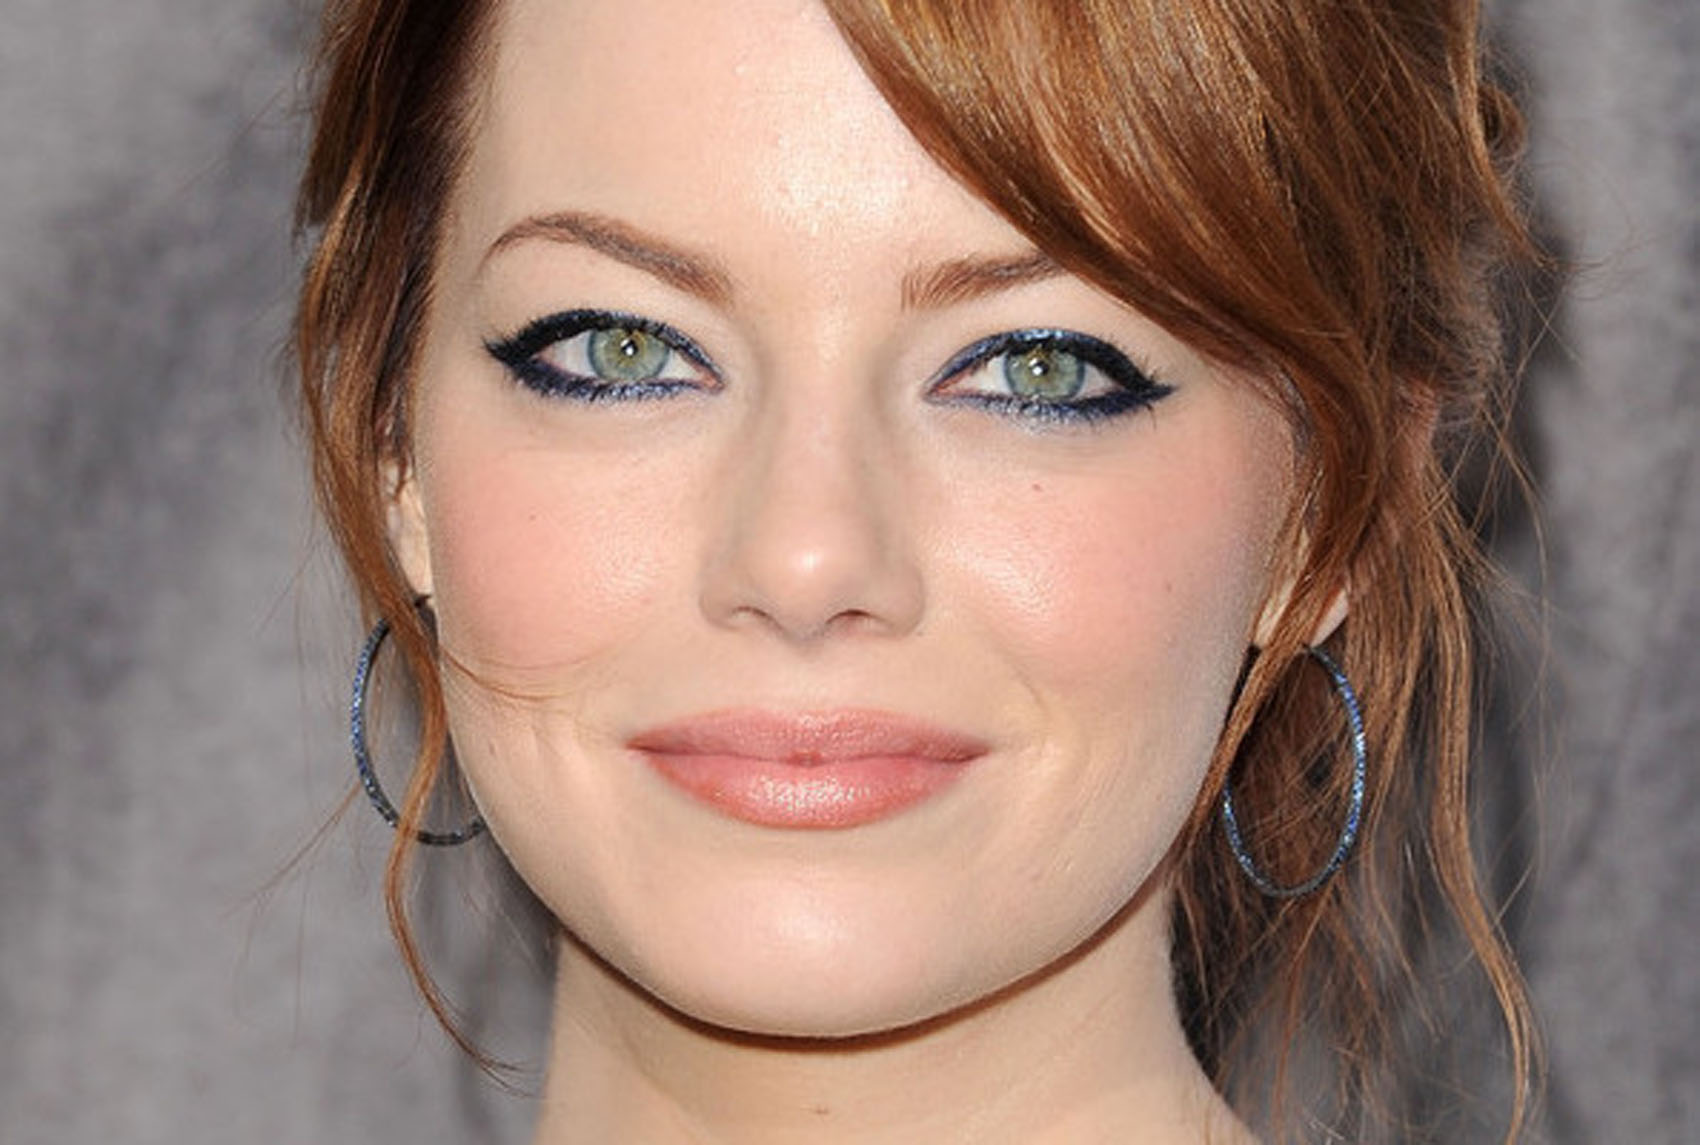 Get the look emma stone 39 s eyes love niki - Maquillage yeux nude ...